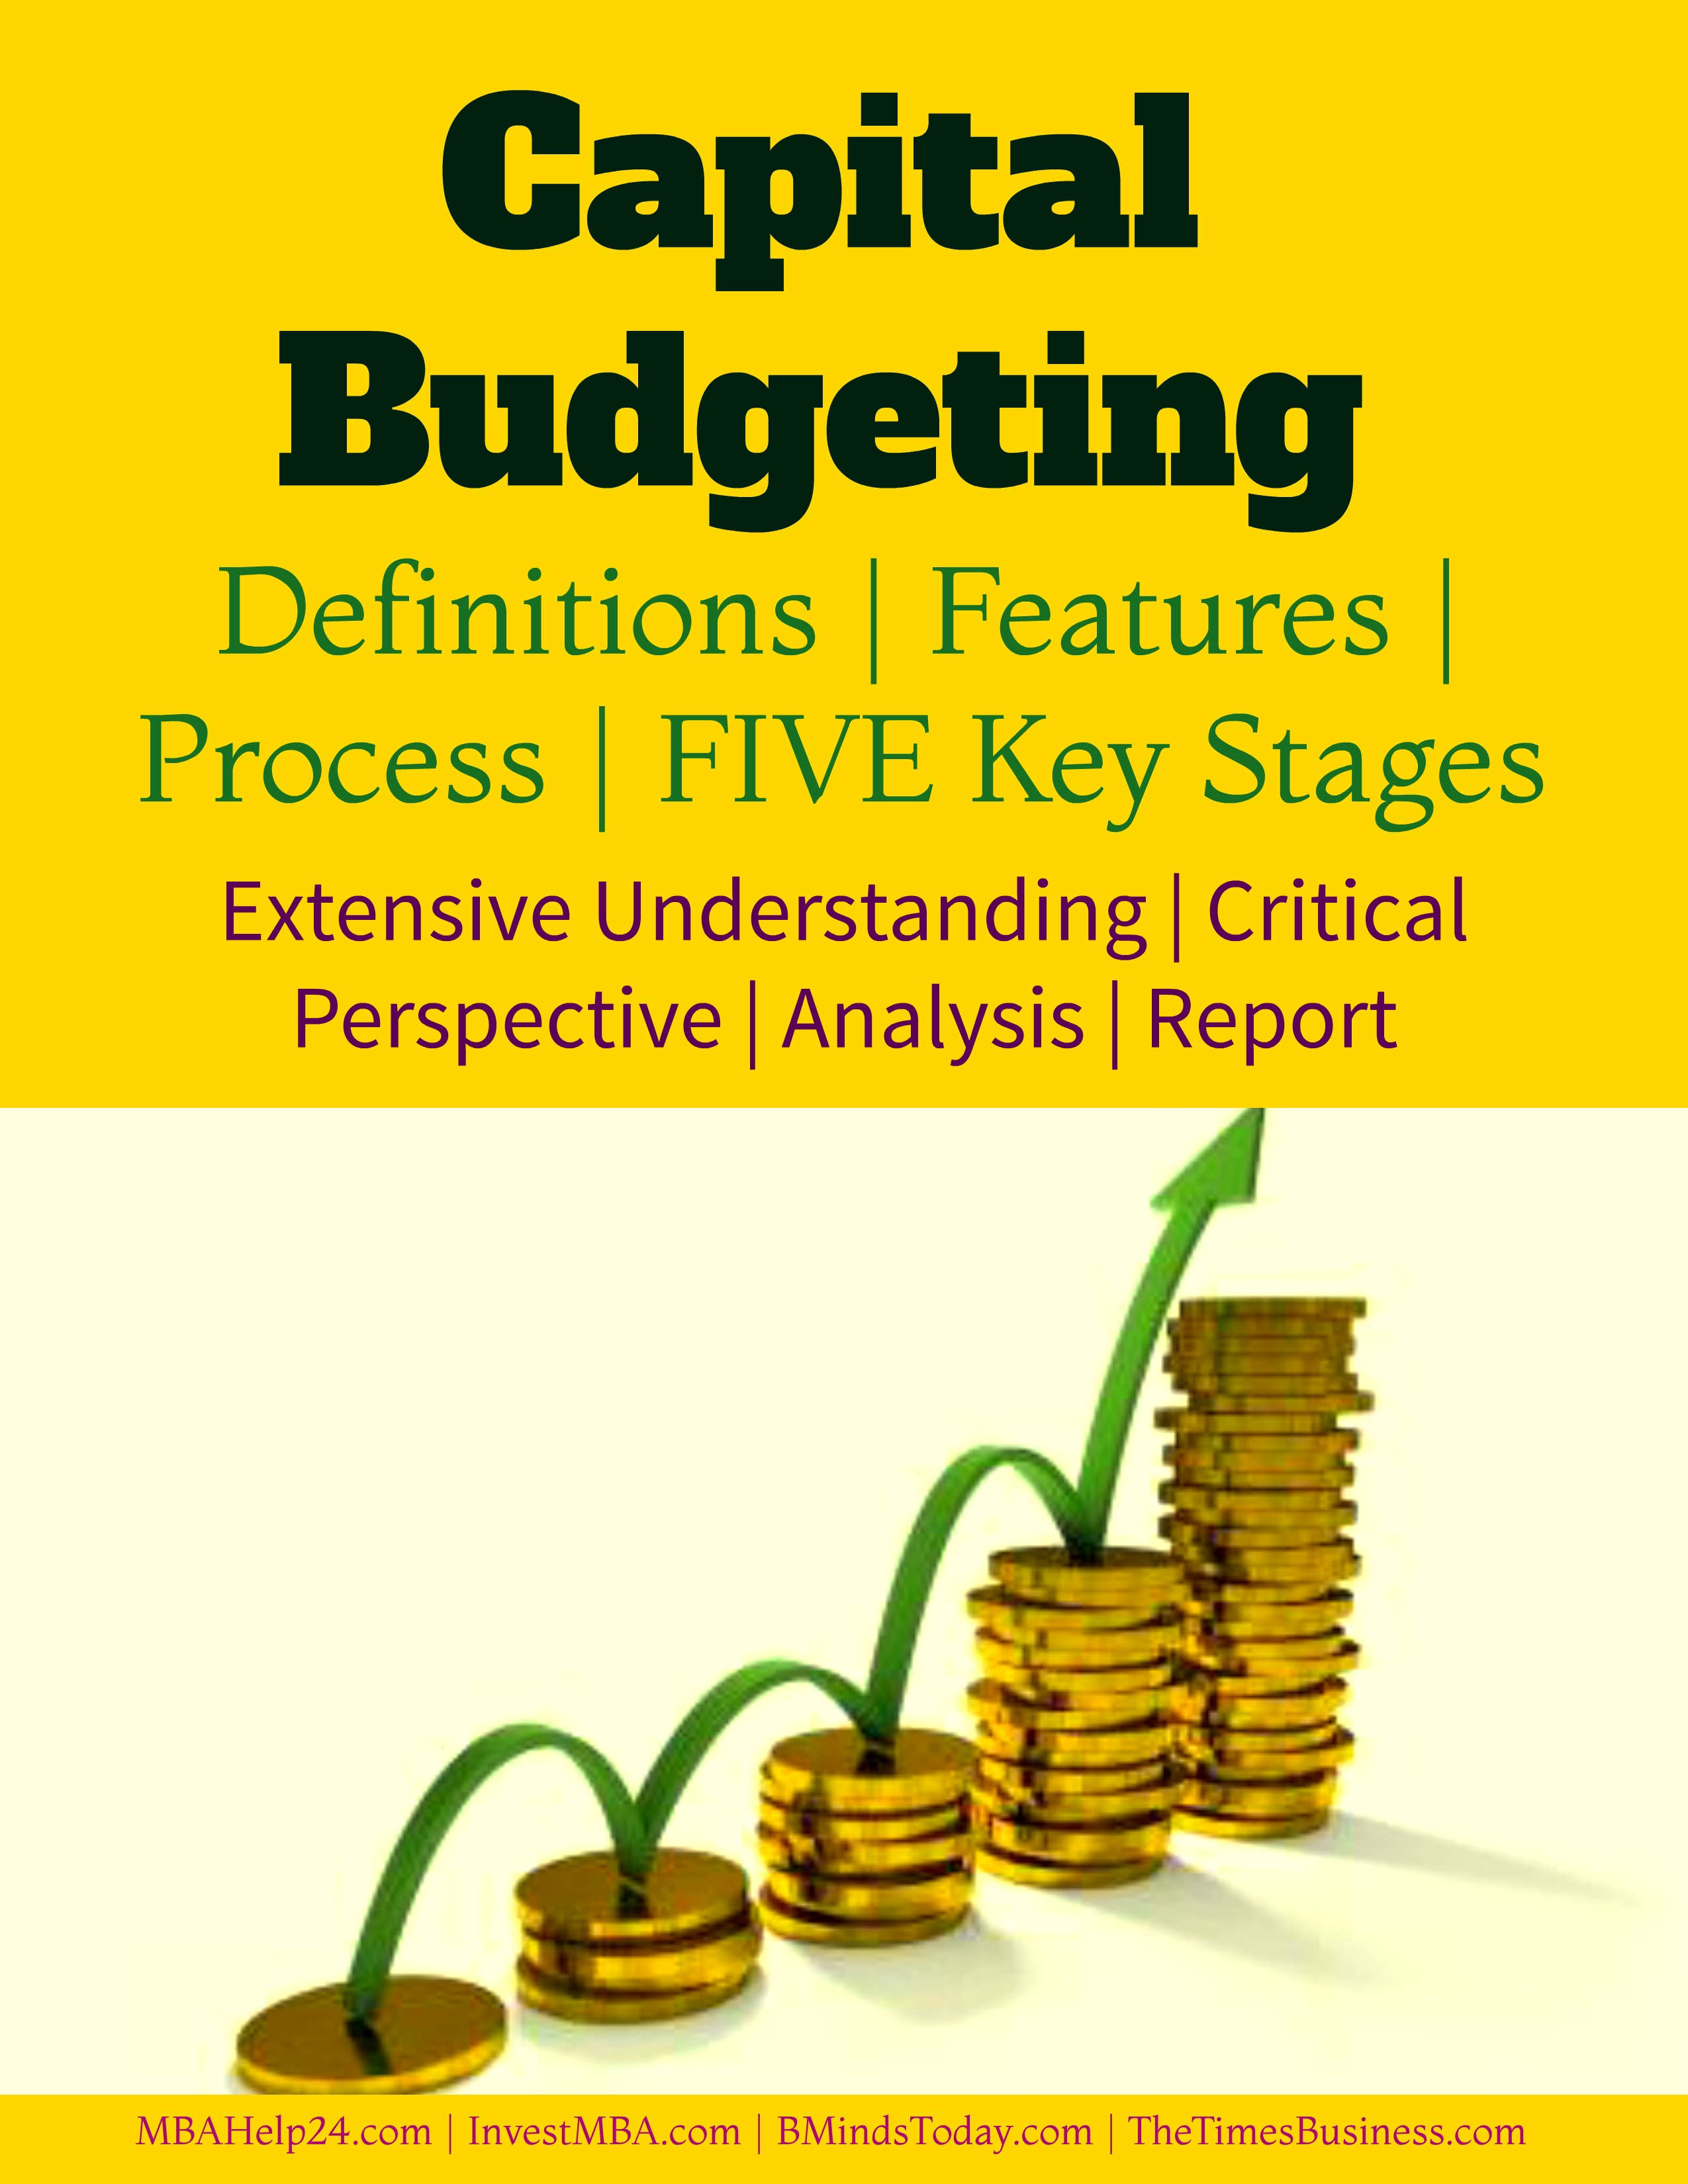 Capital budgeting- definitions, processes, stages and implications capital budgeting Capital Budgeting | Definitions | Features | Process | FIVE Stages Capital budgeting definitions processes stages and implications capital budgeting | definitions | features | process Capital Budgeting | Definitions | Features | Process Capital budgeting definitions processes stages and implications